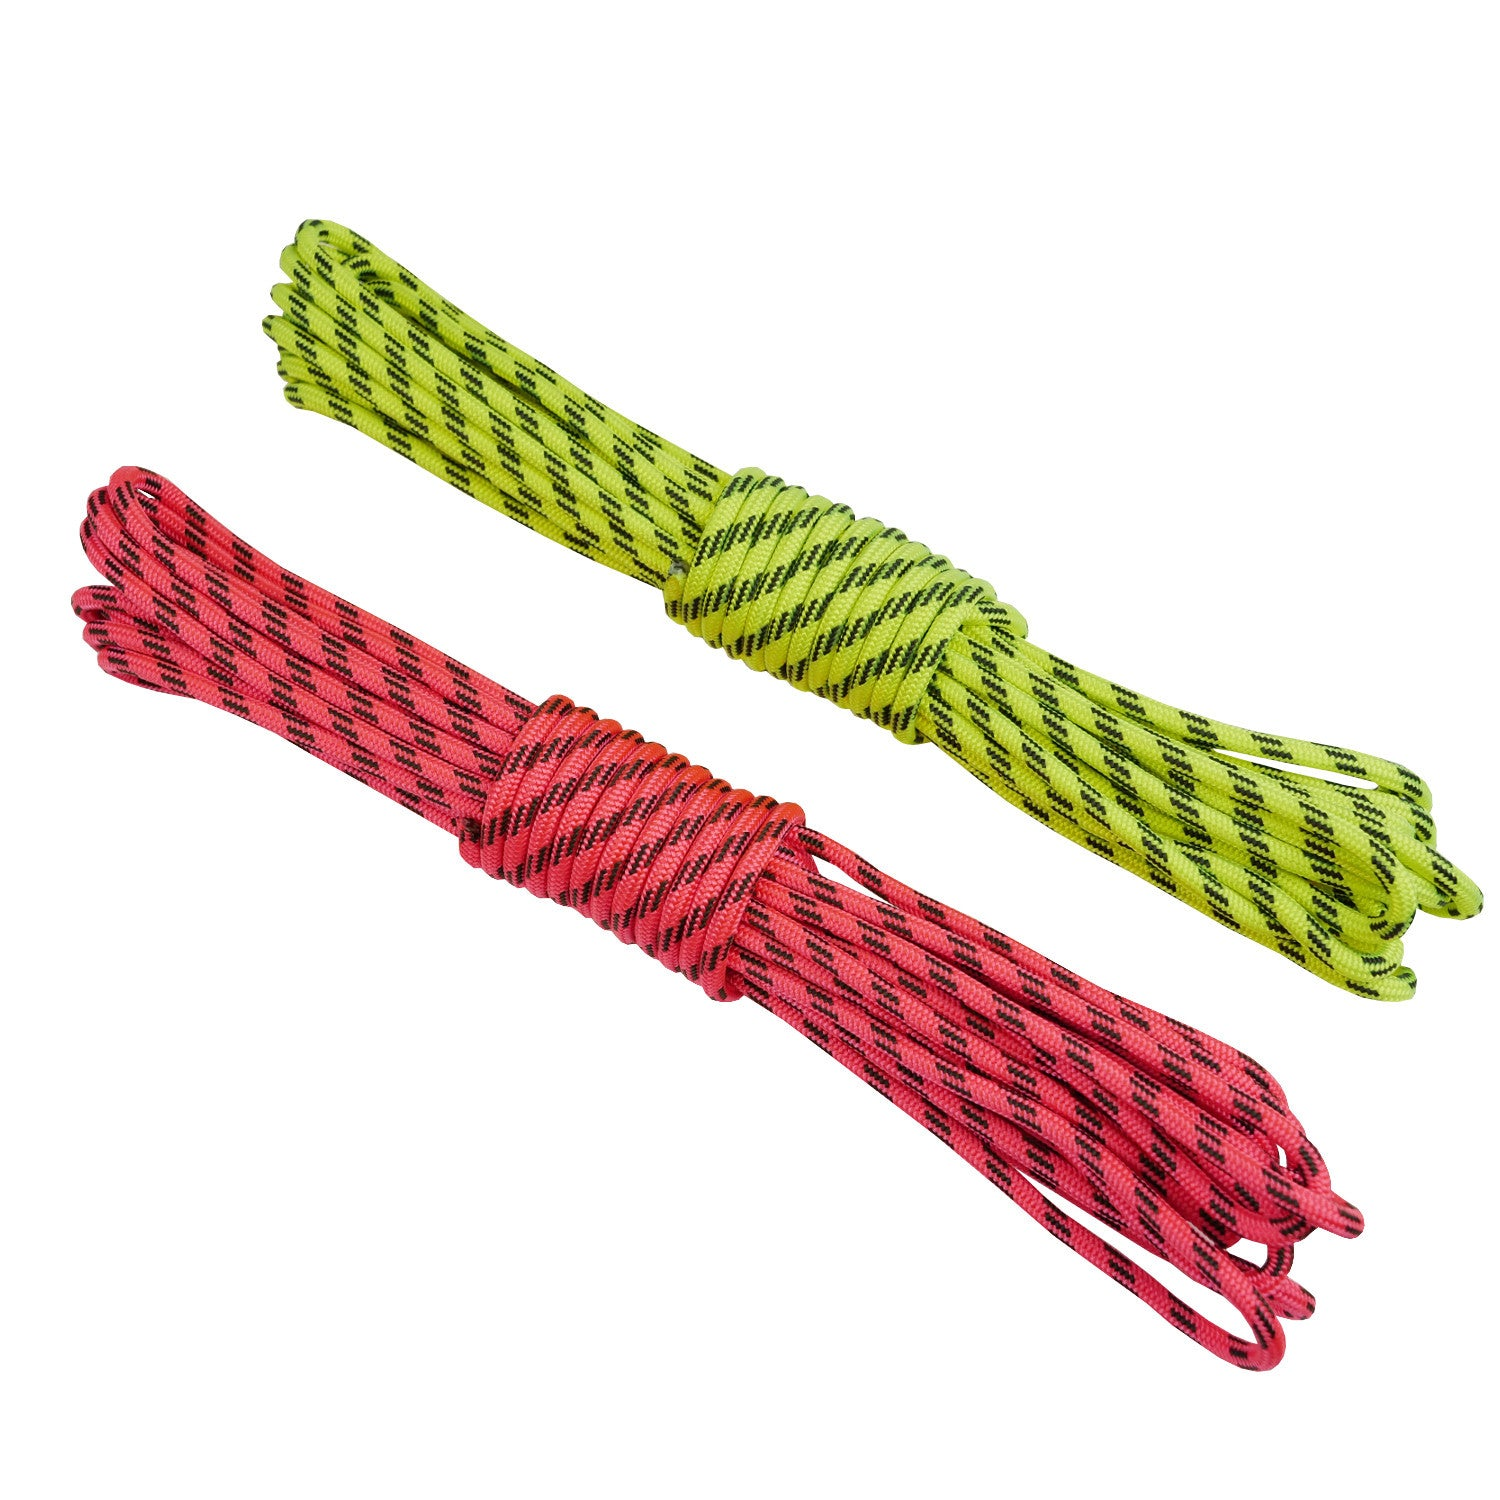 2 sets of Rock + Run Accessory cord 4mm yellow and pink